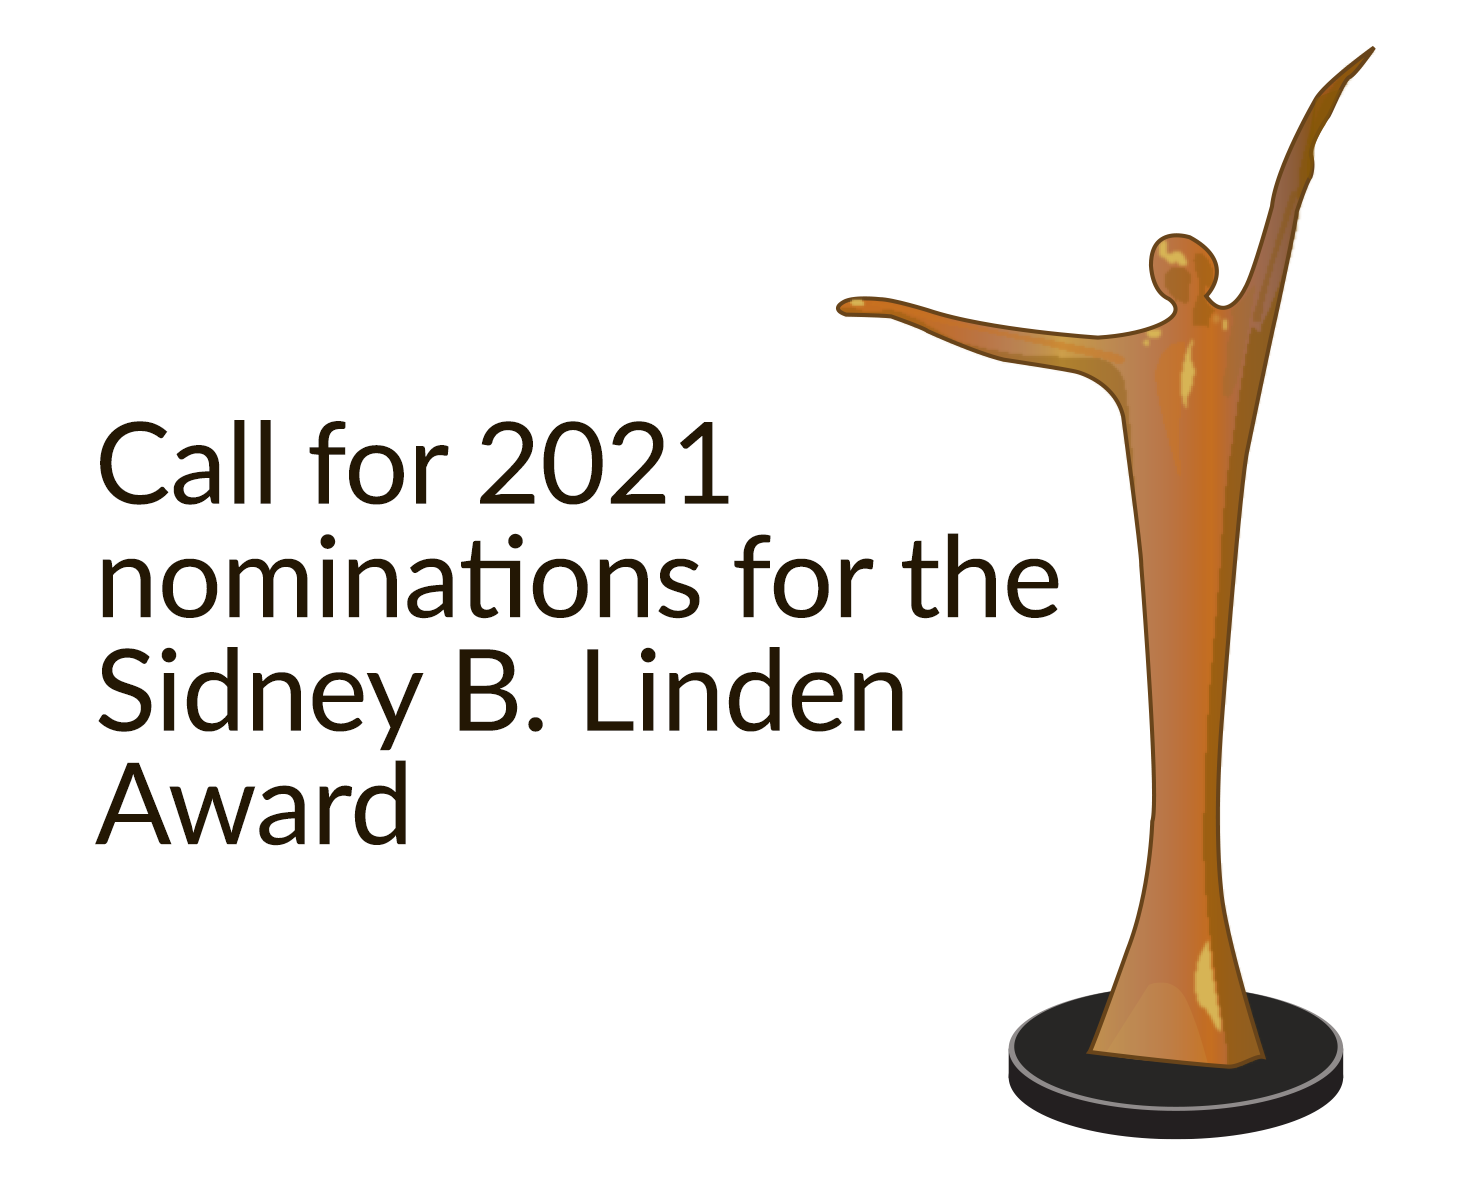 Call for 2021 nominations for the Sidney b. Linden Award